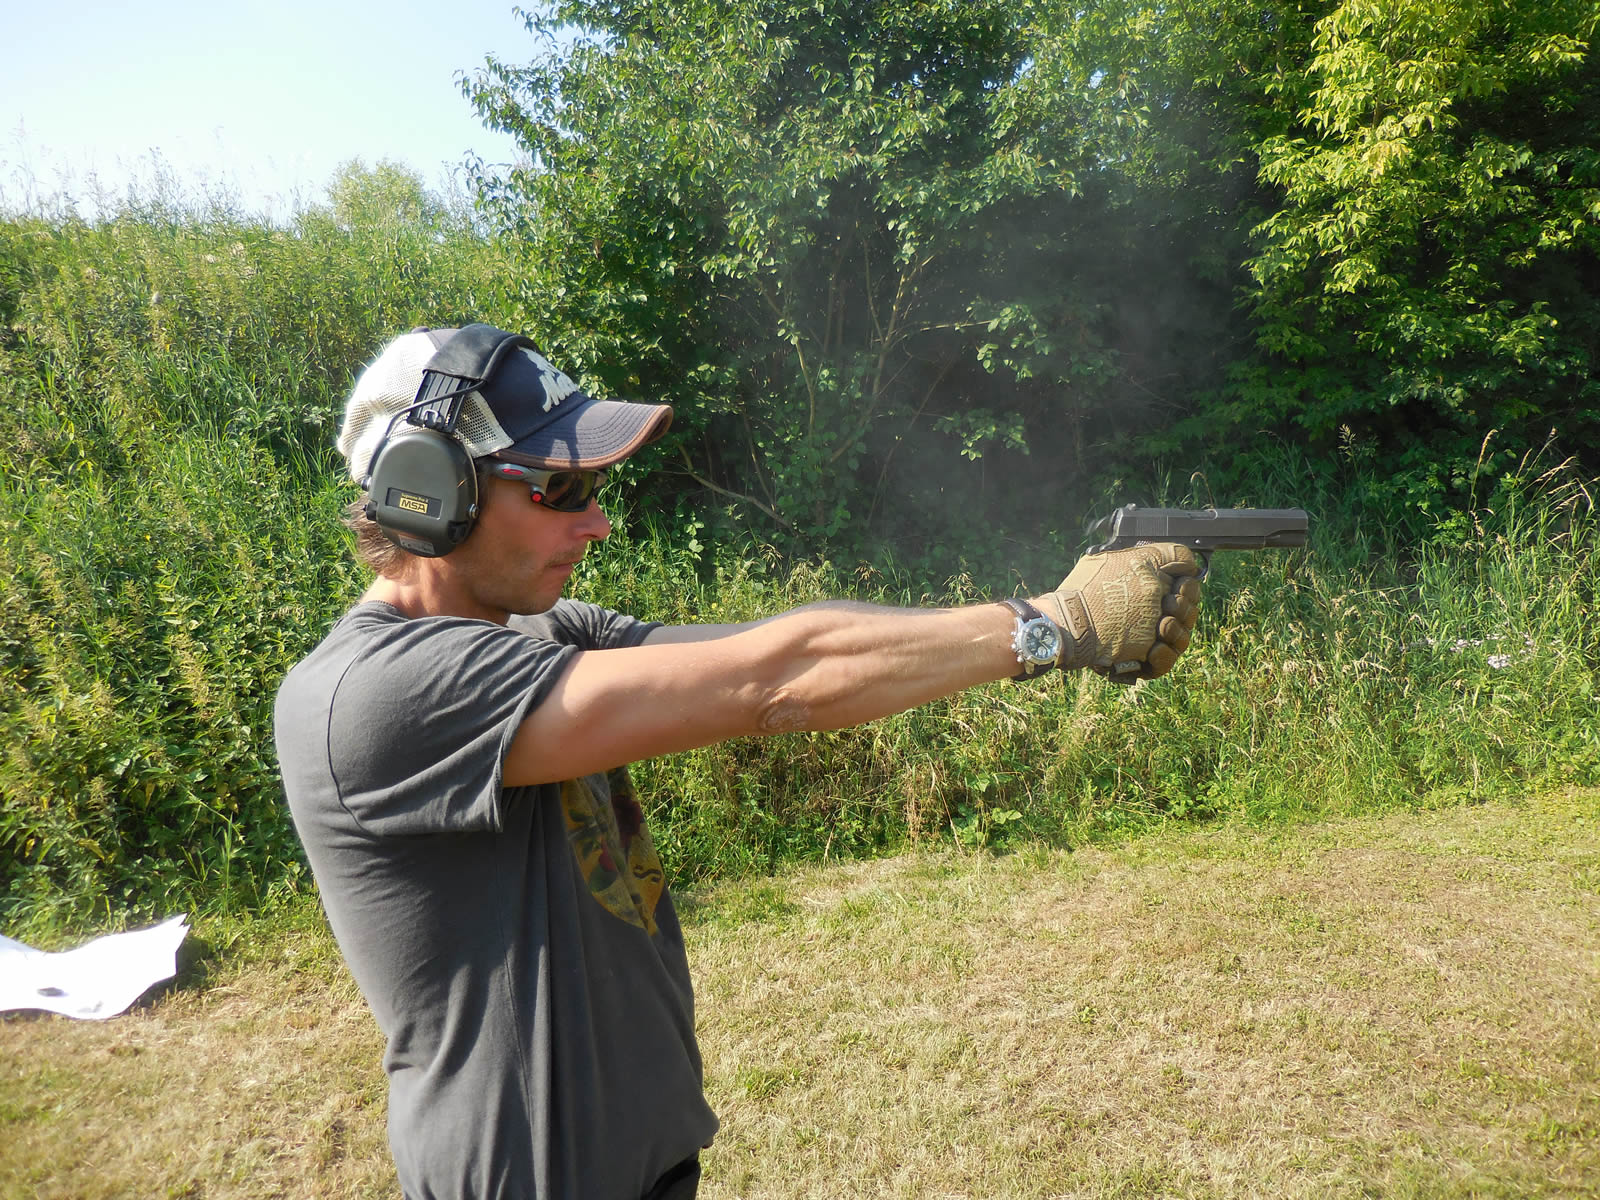 Trying out the 1911